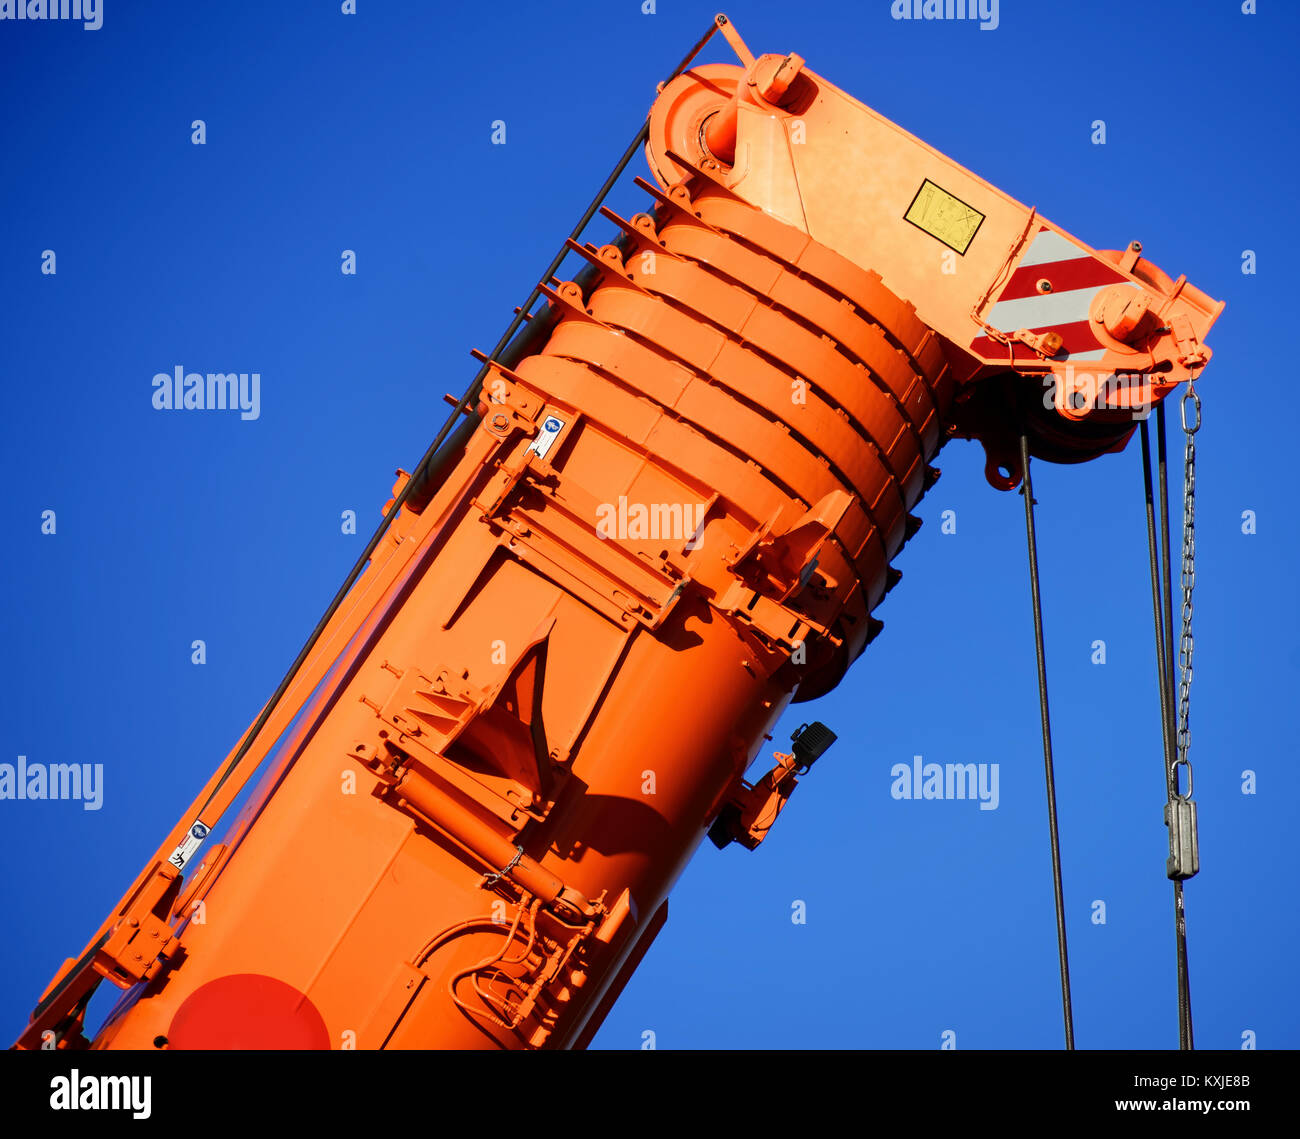 Zoom shot of an orange-coloured truck-mounted crane with telescopic boom pushed together, blue sky - Stock Image